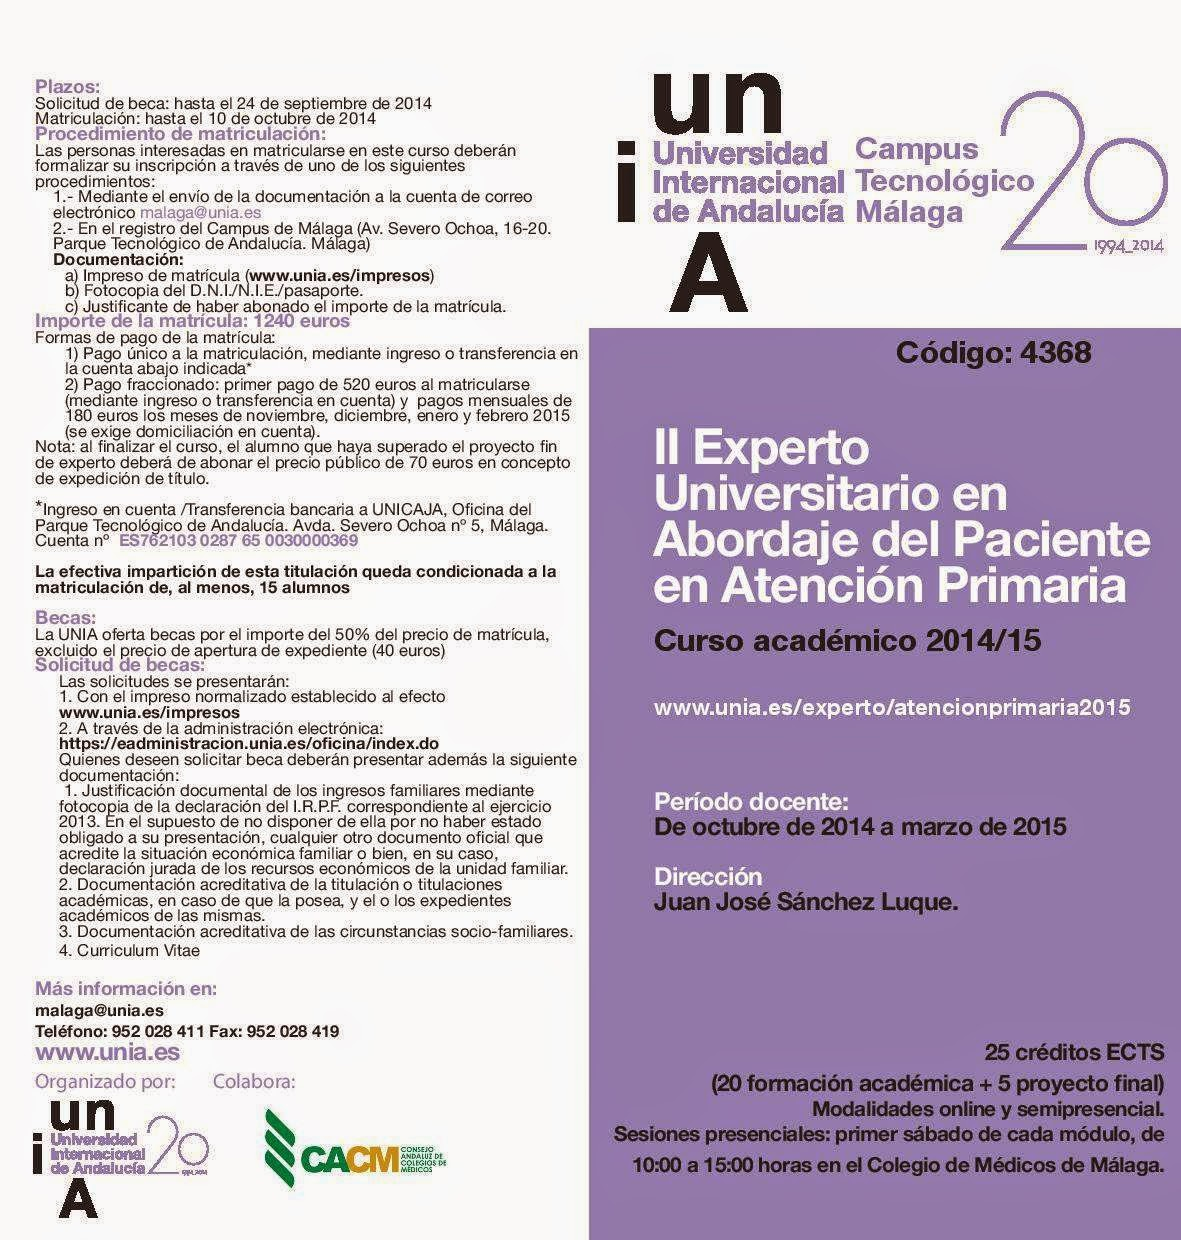 http://www.unia.es/images/stories/sede_malaga/CURSO%20ACADEMICO%202014-15/FOLLETOS/4368_atencion_primaria.pdf